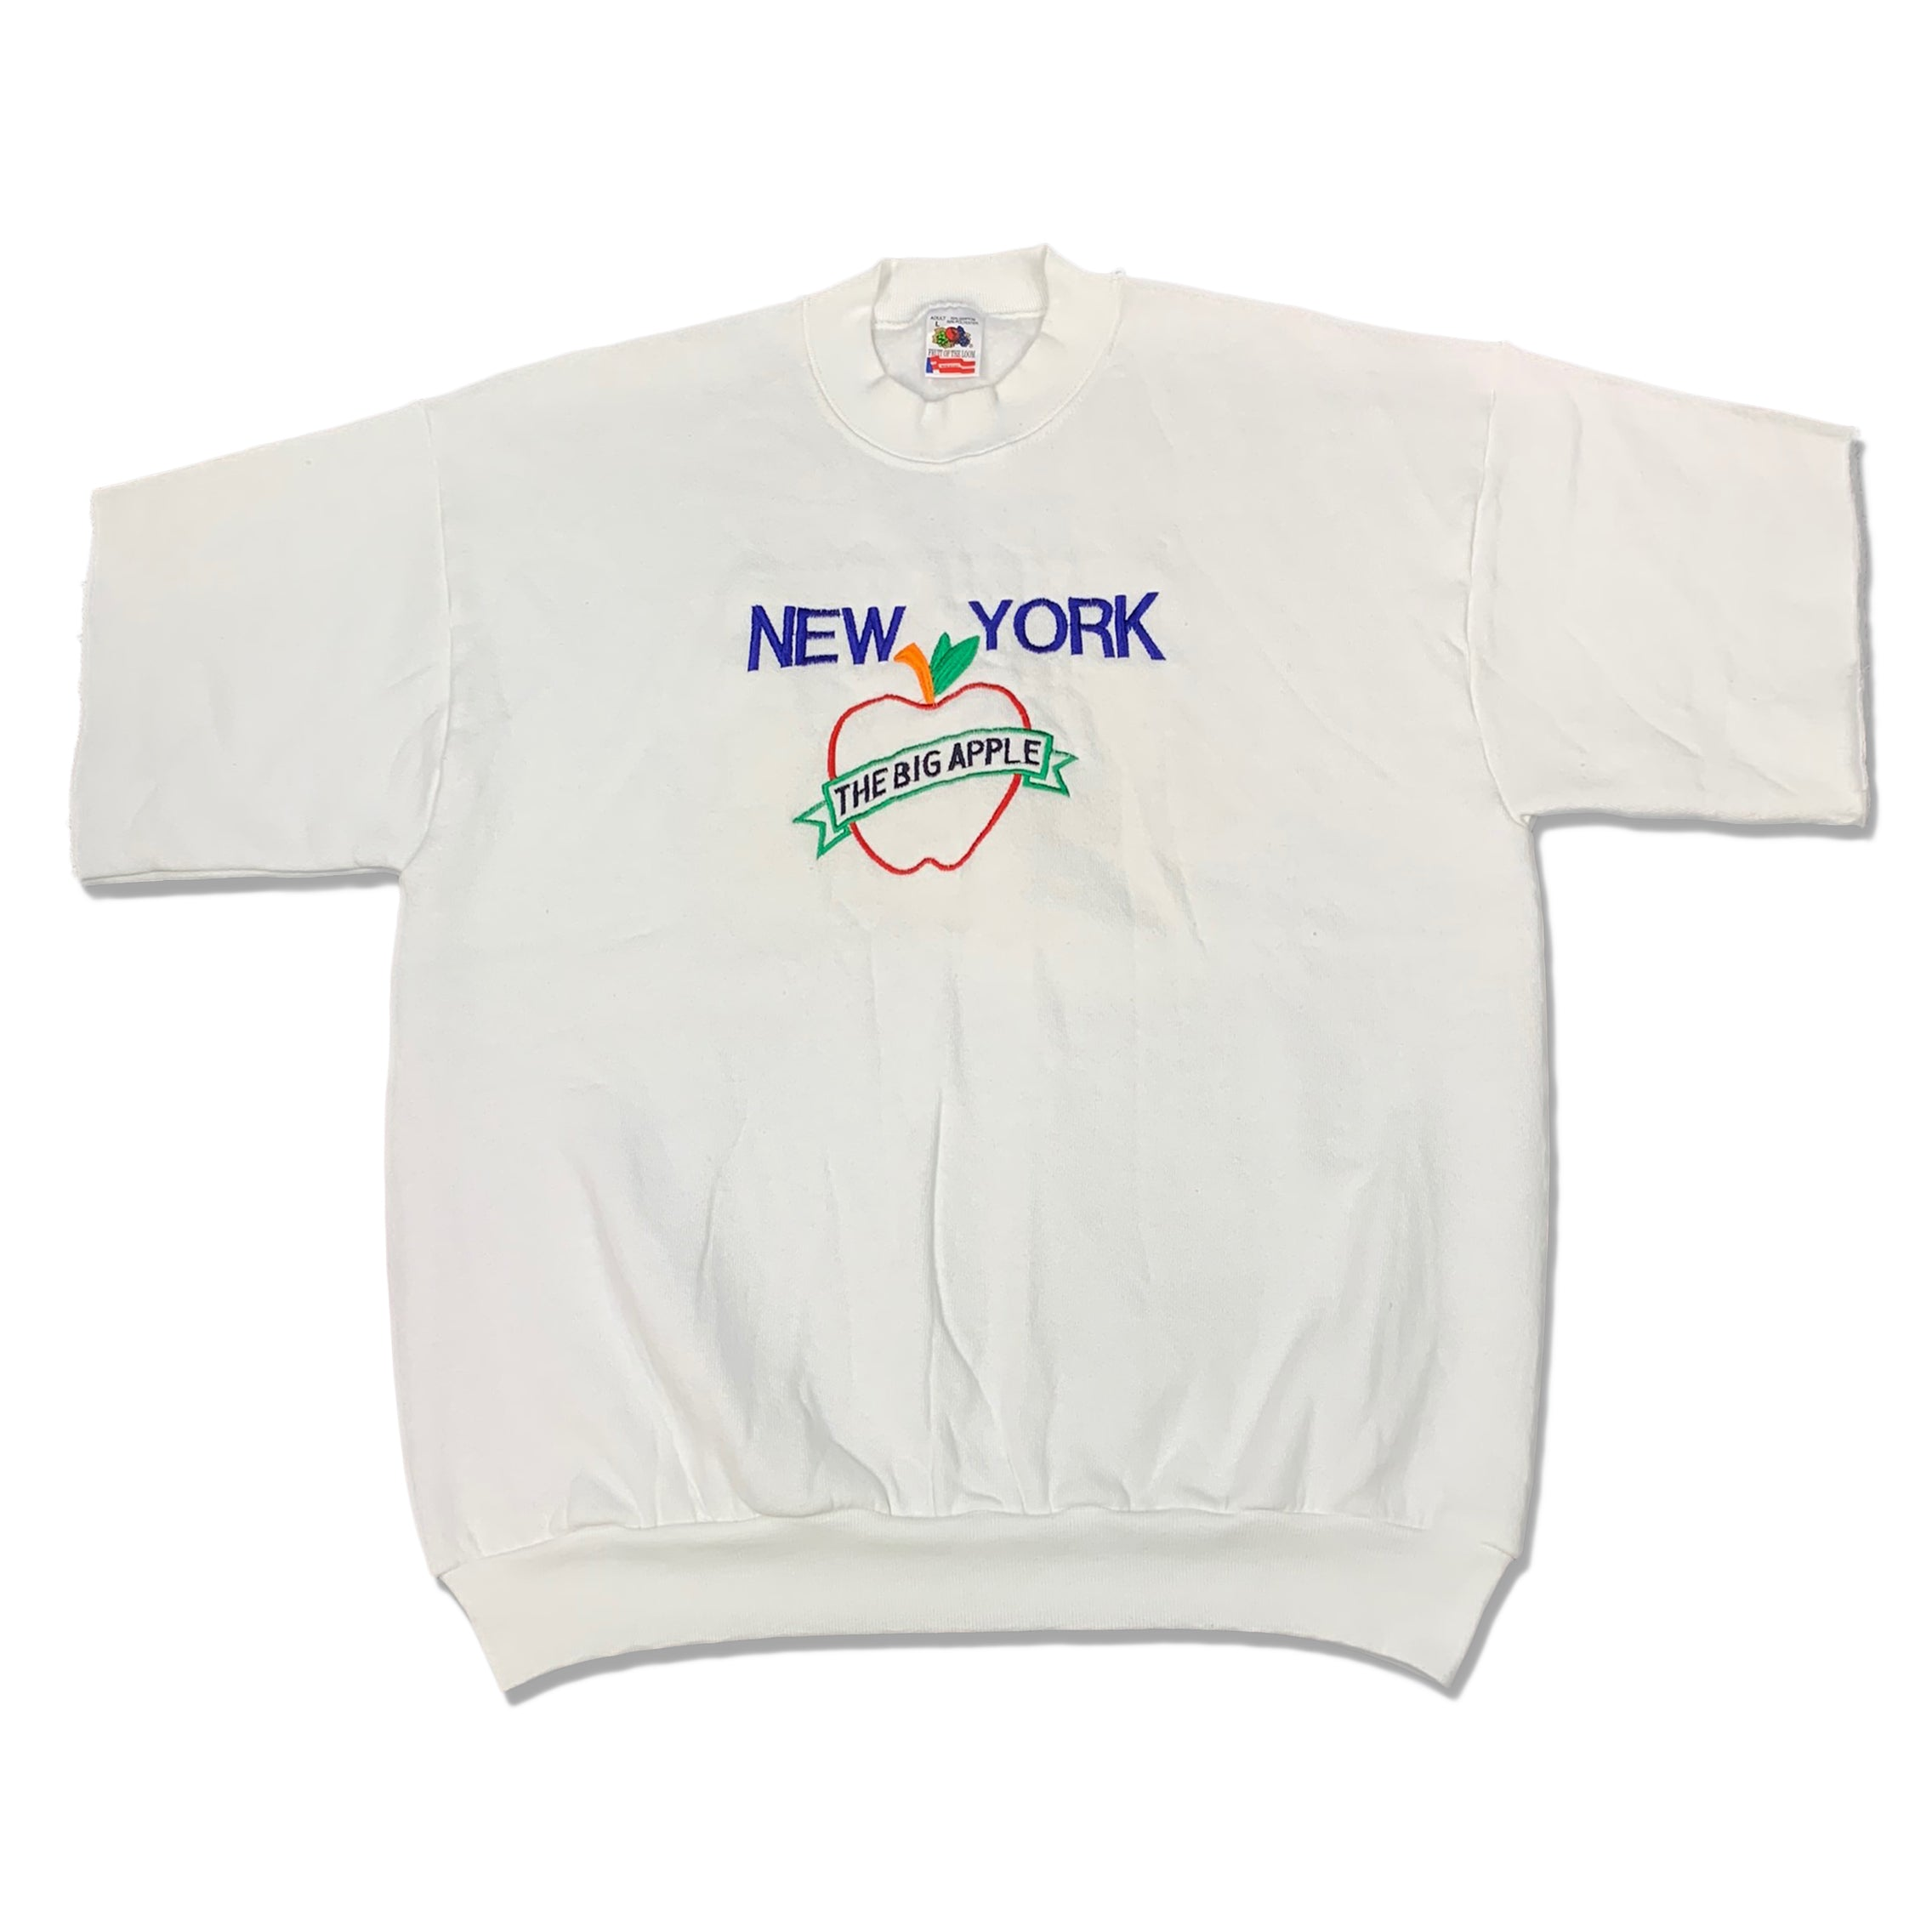 90s New York Big Apple Cutoff Sweatshirt